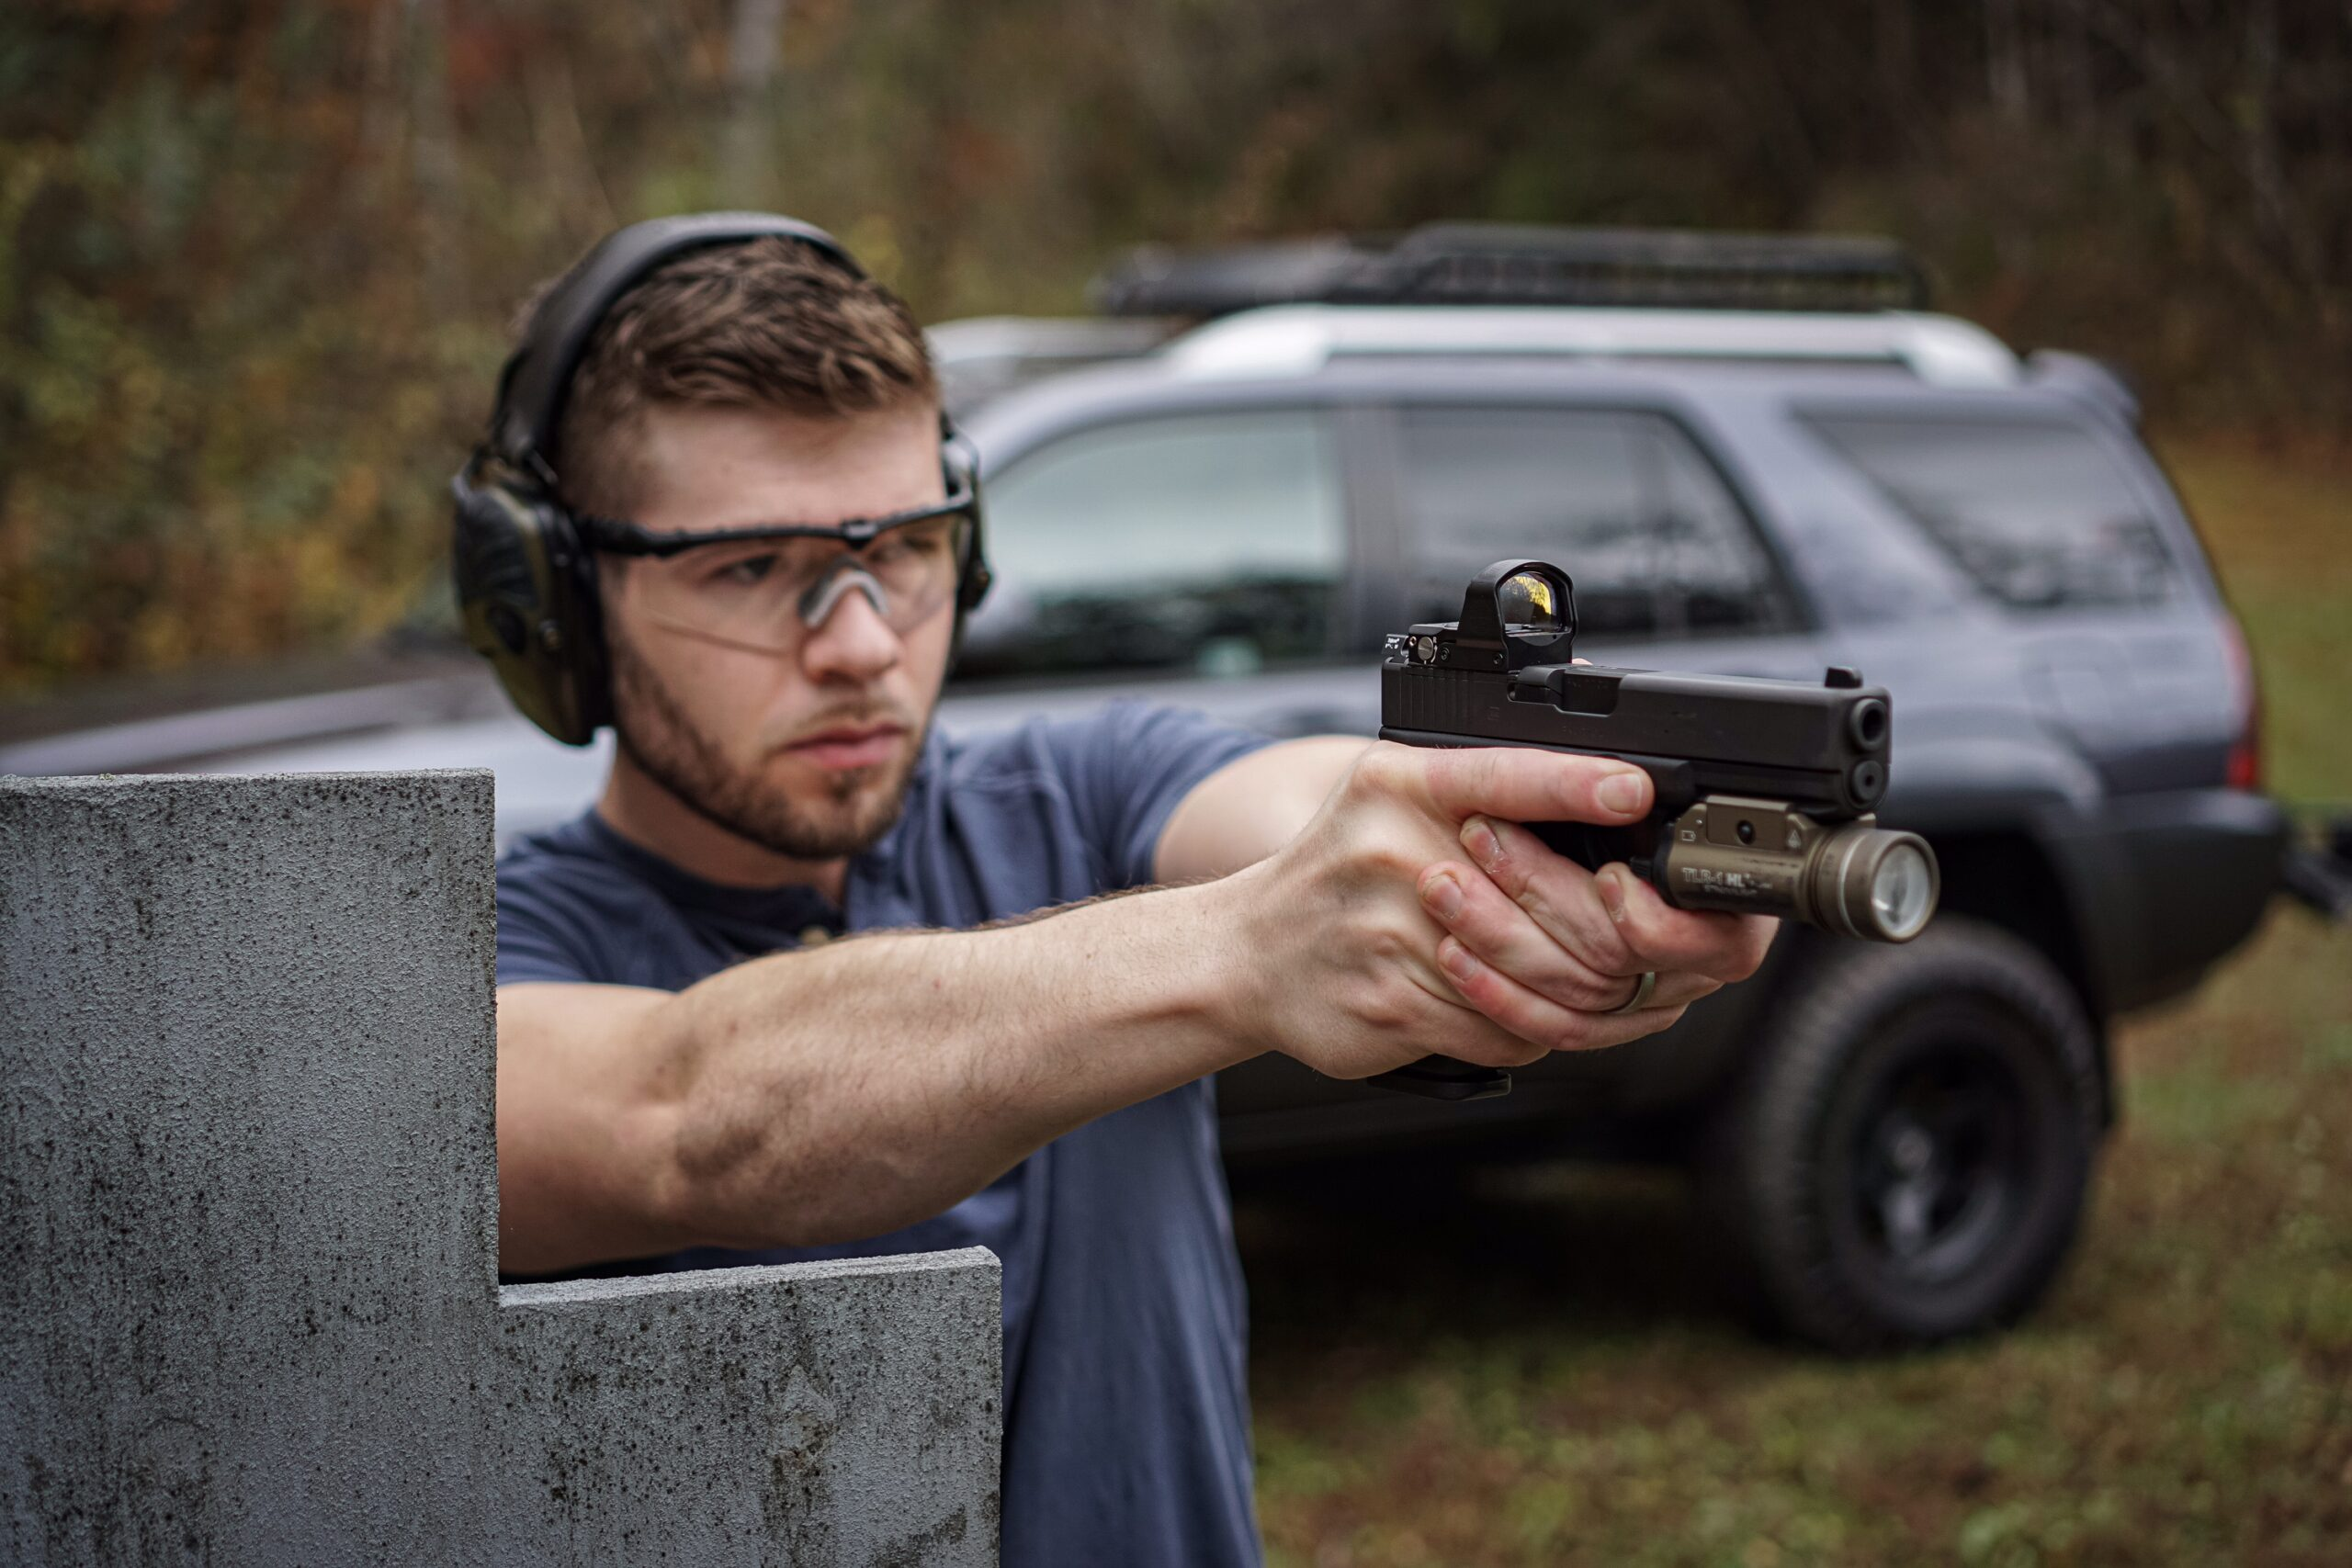 The author shooting a Gen 4 Glock 17 at a shooting range